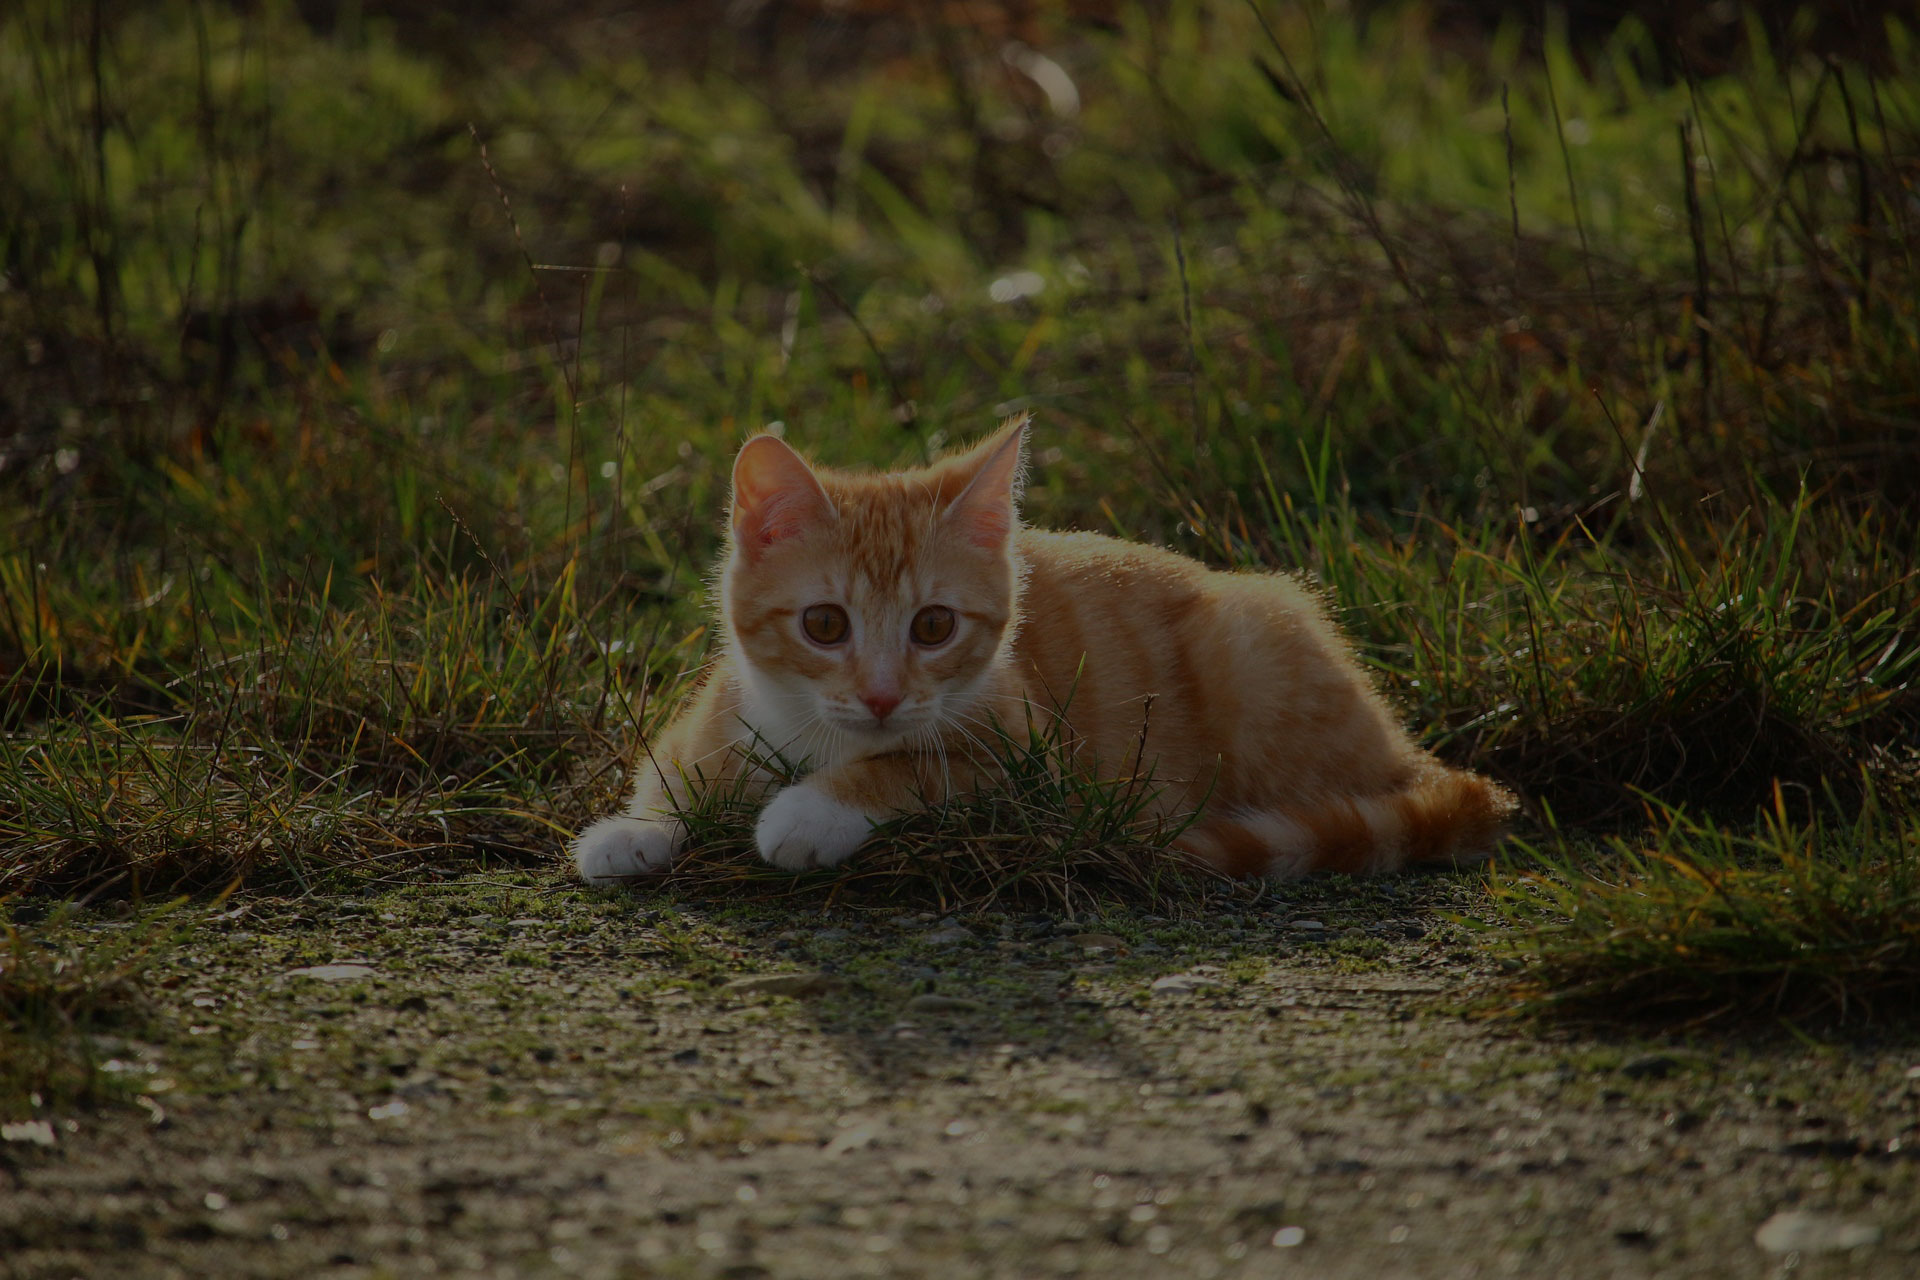 photograph of orange tabby kitten on grass